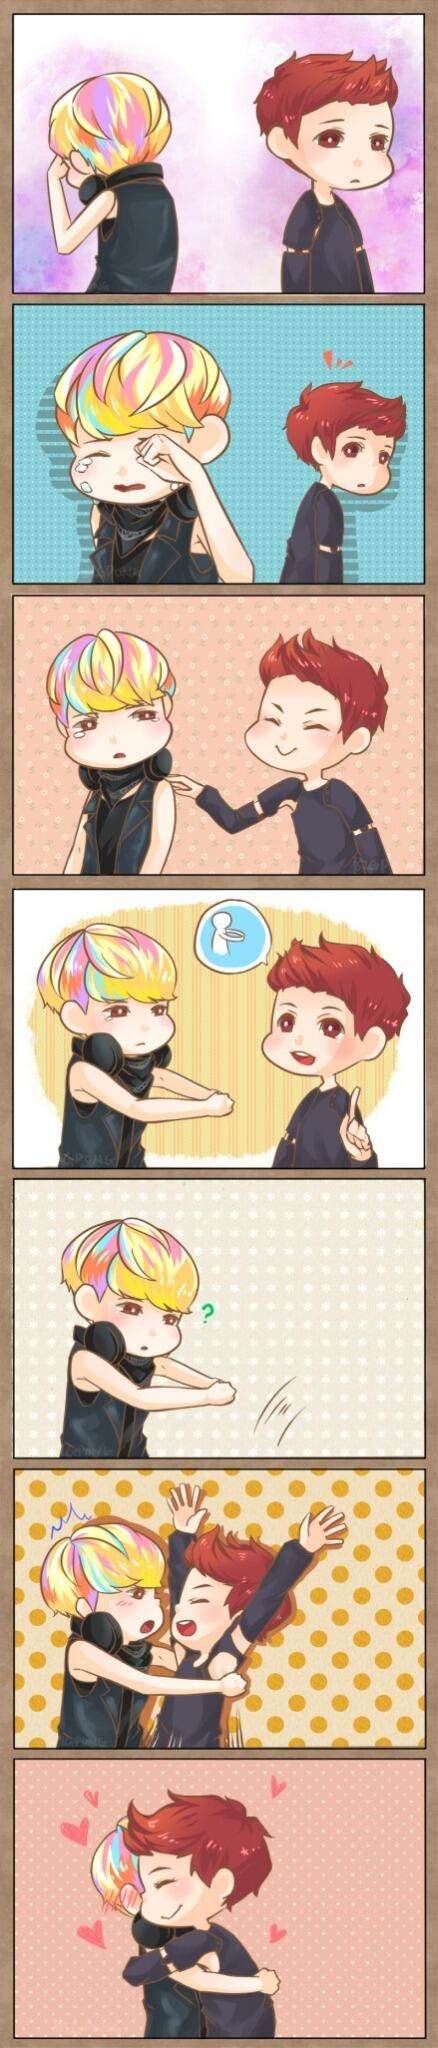 This is so cute. I don't ship these two AT ALL. But I just love their friendship. ^_^ Luhan and Sehun.